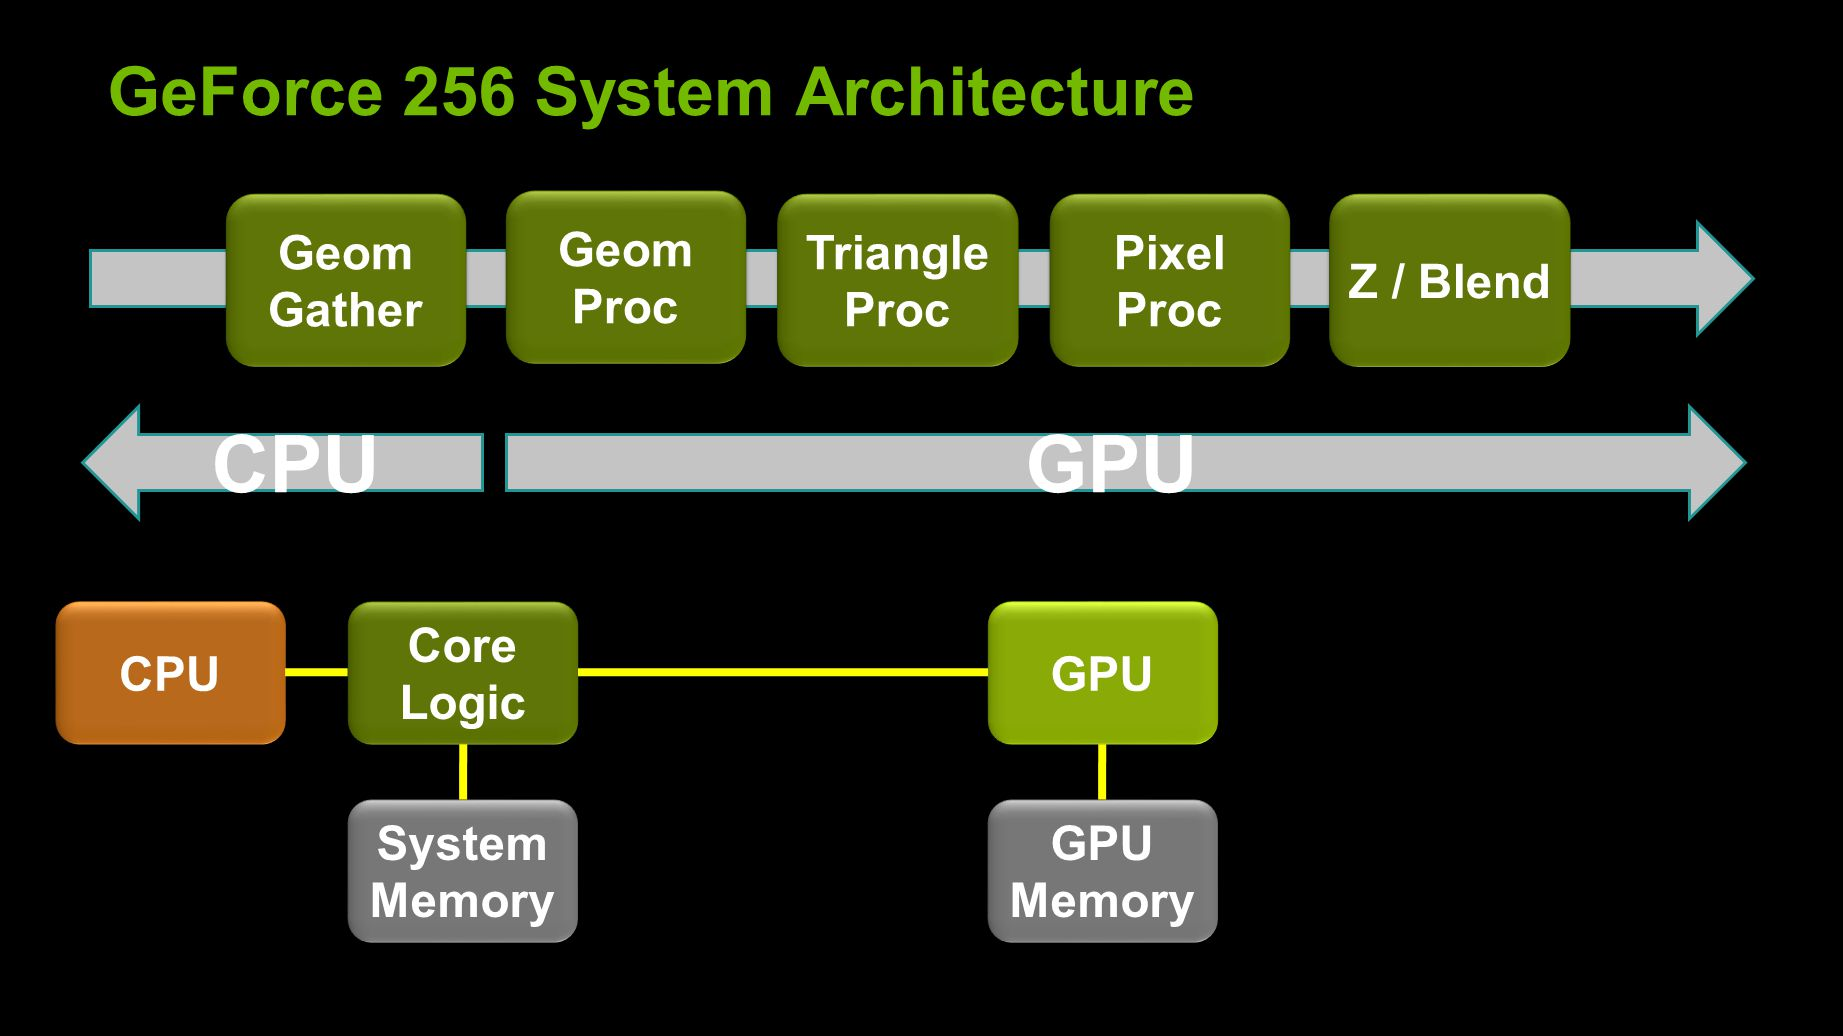 GeForce 256 System Architecture Geom Gather Geom Proc Geom Proc Triangle Proc Triangle Proc Pixel Proc Pixel Proc Z / Blend CPU Core Logic GPU GPU Memory System Memory GPUCPU